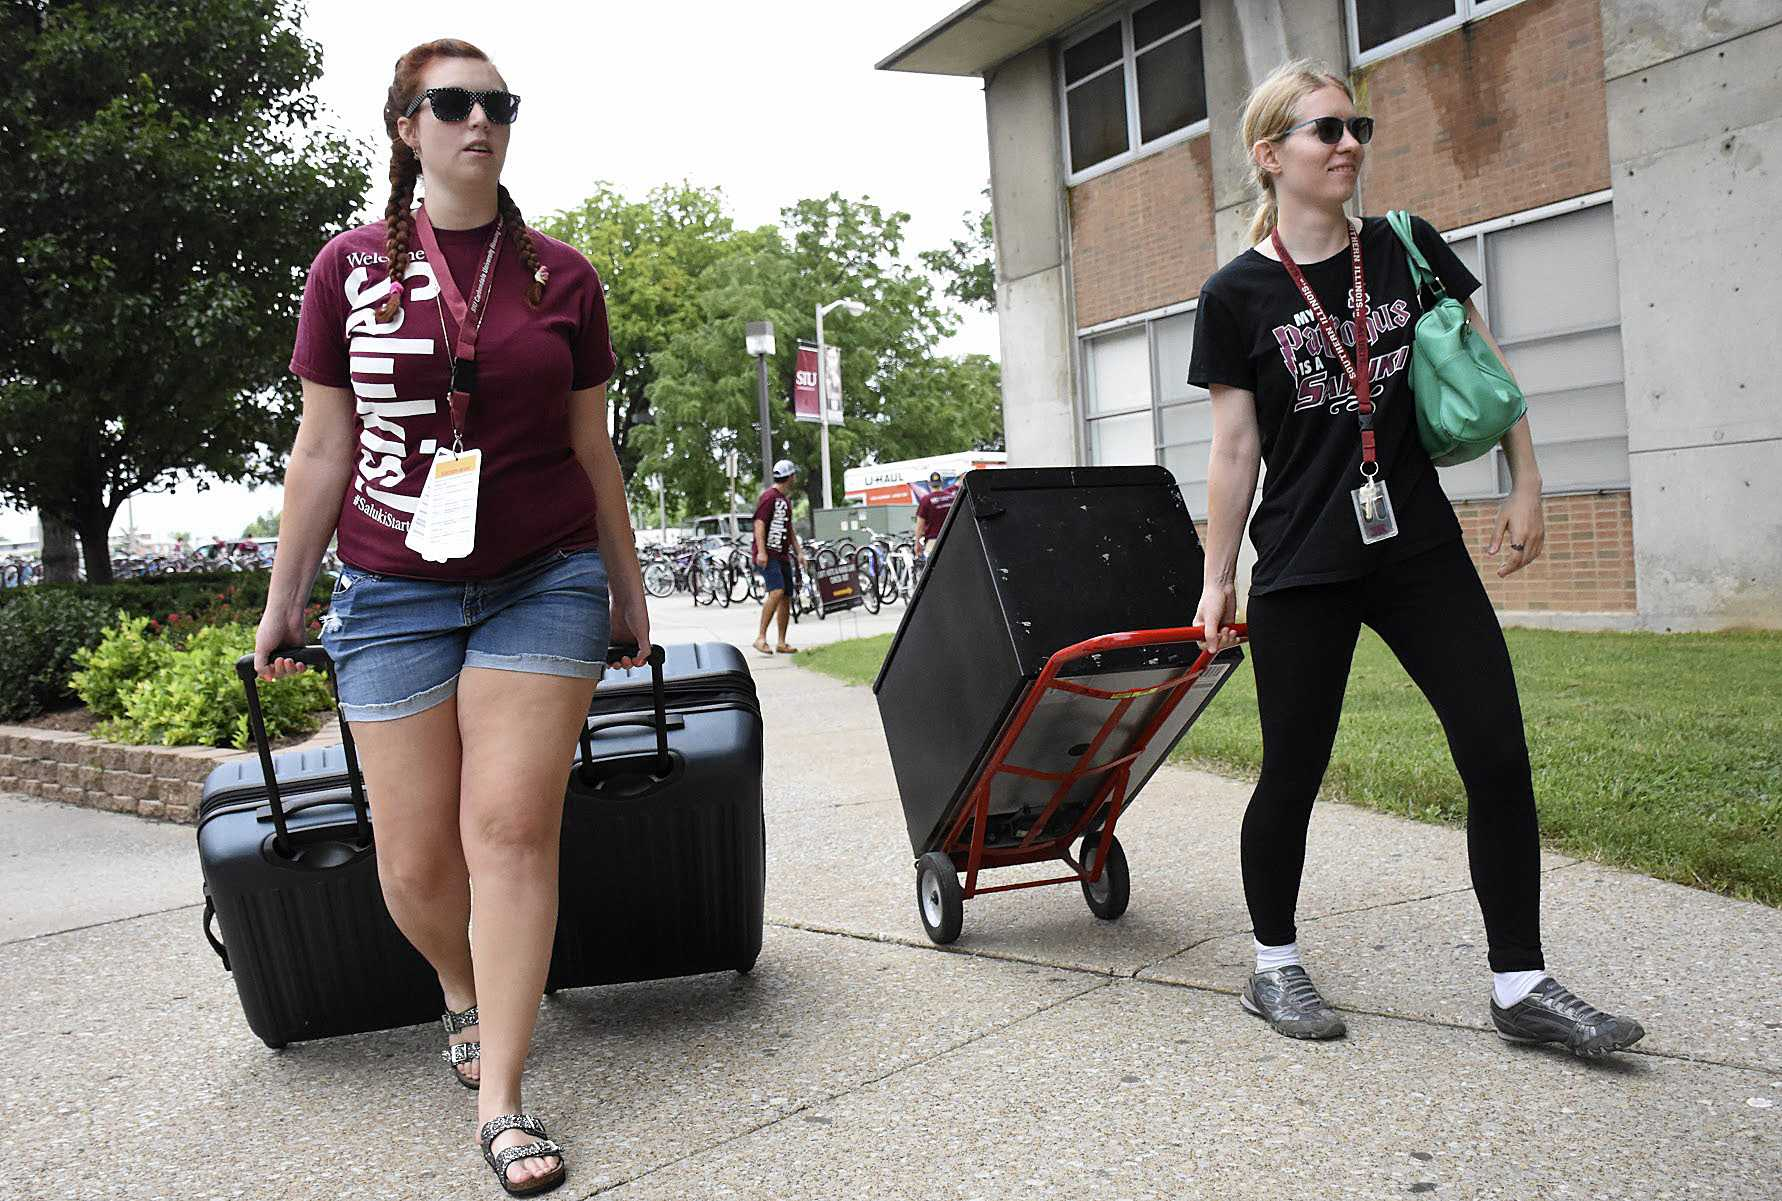 Emmalie Hall, a junior from Chicago studying interior design, moves her belongings with the help of volunteer Desiree Smith on Friday outside Mae Smith Hall. (Athena Chrysanthou | @Chrysant1Athena)